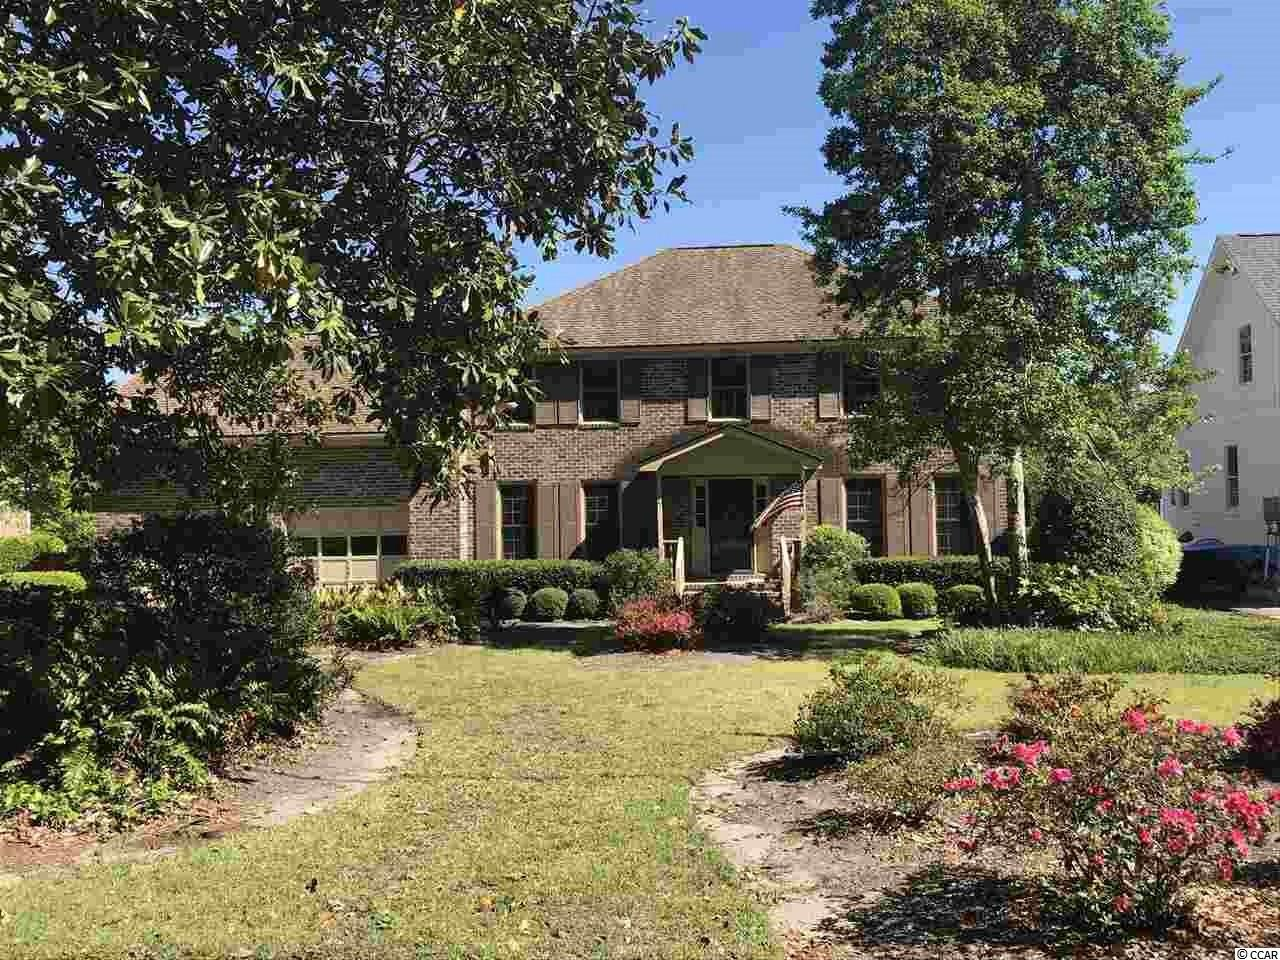 594 Rum Gully Road is a 4-bedroom, 2-1/2 bath home located in the sought-after Mt. Gilead neighborhood. This home features a private pool along with a covered and floating dock. The interior layout is a classic and desirable design. Formal living room, dining room, kitchen (with breakfast area) and den located on the first floor with all four bedrooms on the second floor. A half-bath accompanies the living areas on the first floor with both full bathrooms upstairs with the bedrooms. There is also a bonus room above the garage which is accessed from a separate set of stairs off the kitchen. A screened in porch located off the den overlooks the pool area. If you've been waiting on a traditional style home on the water in Mt. Gilead to hit the market, you're wait is over. Contact the listing agent, or your Realtor, to arrange a private showing.